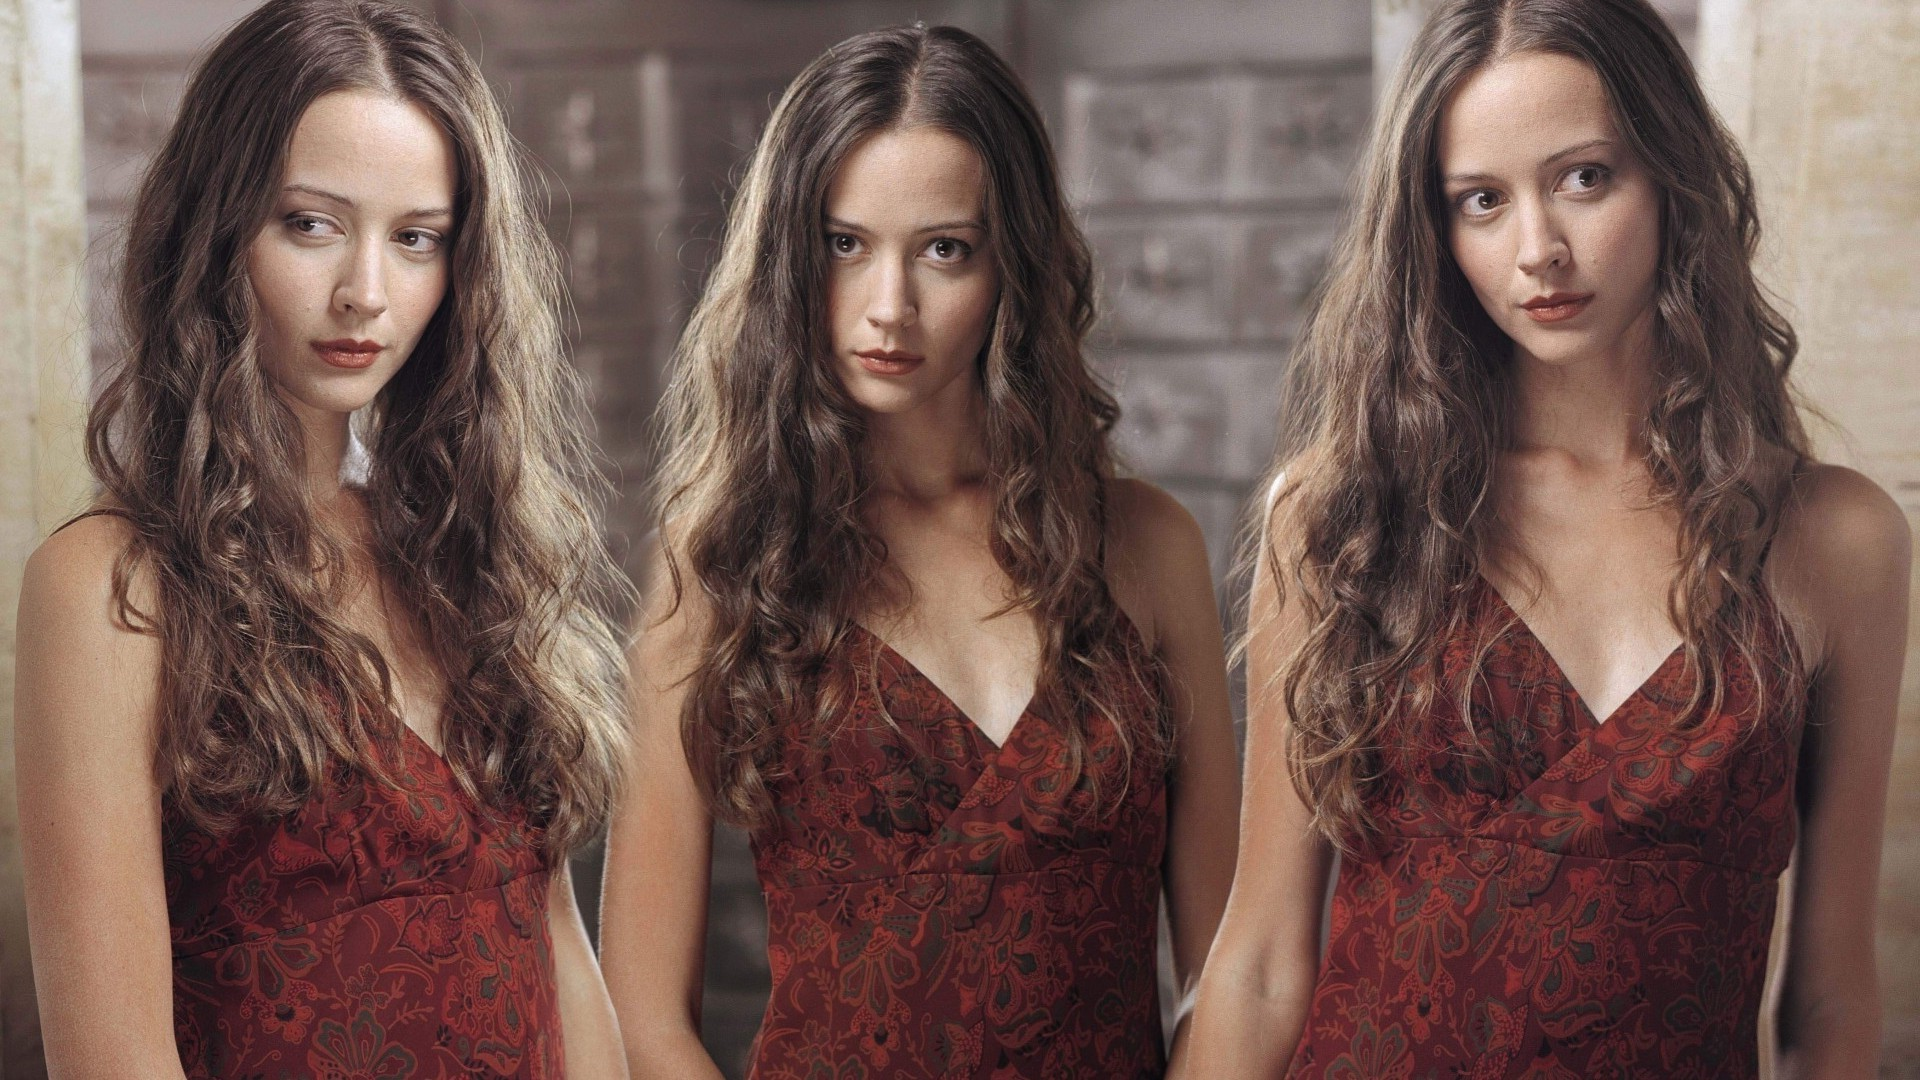 1920x1080 - Amy Acker Wallpapers 7